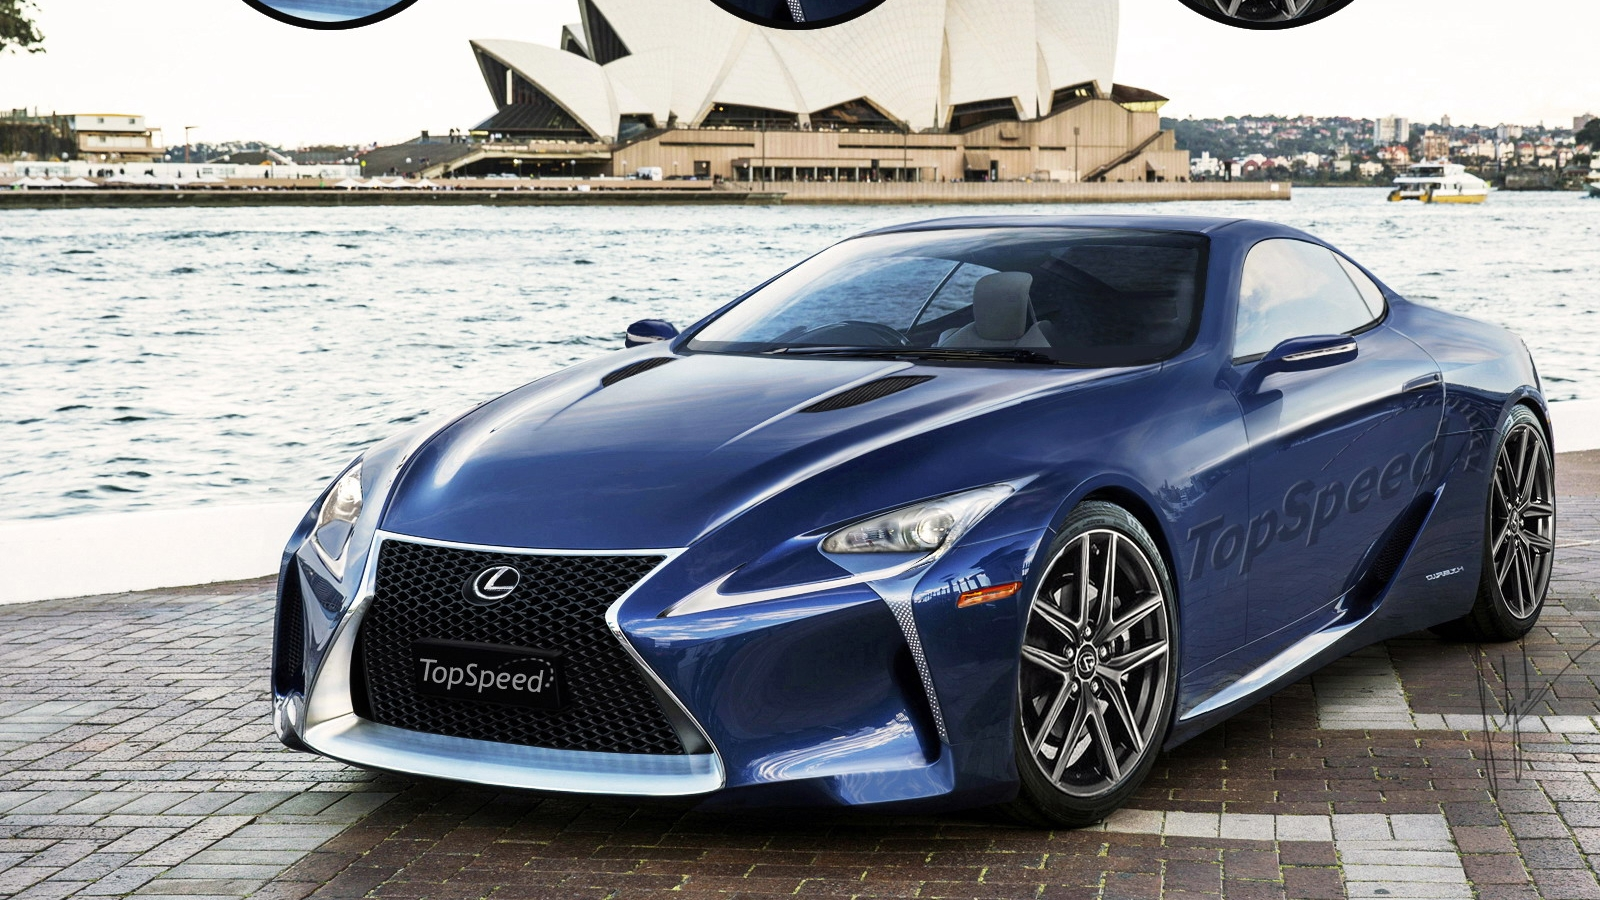 production version lexus lf lc will revive the sc name news top speed. Black Bedroom Furniture Sets. Home Design Ideas